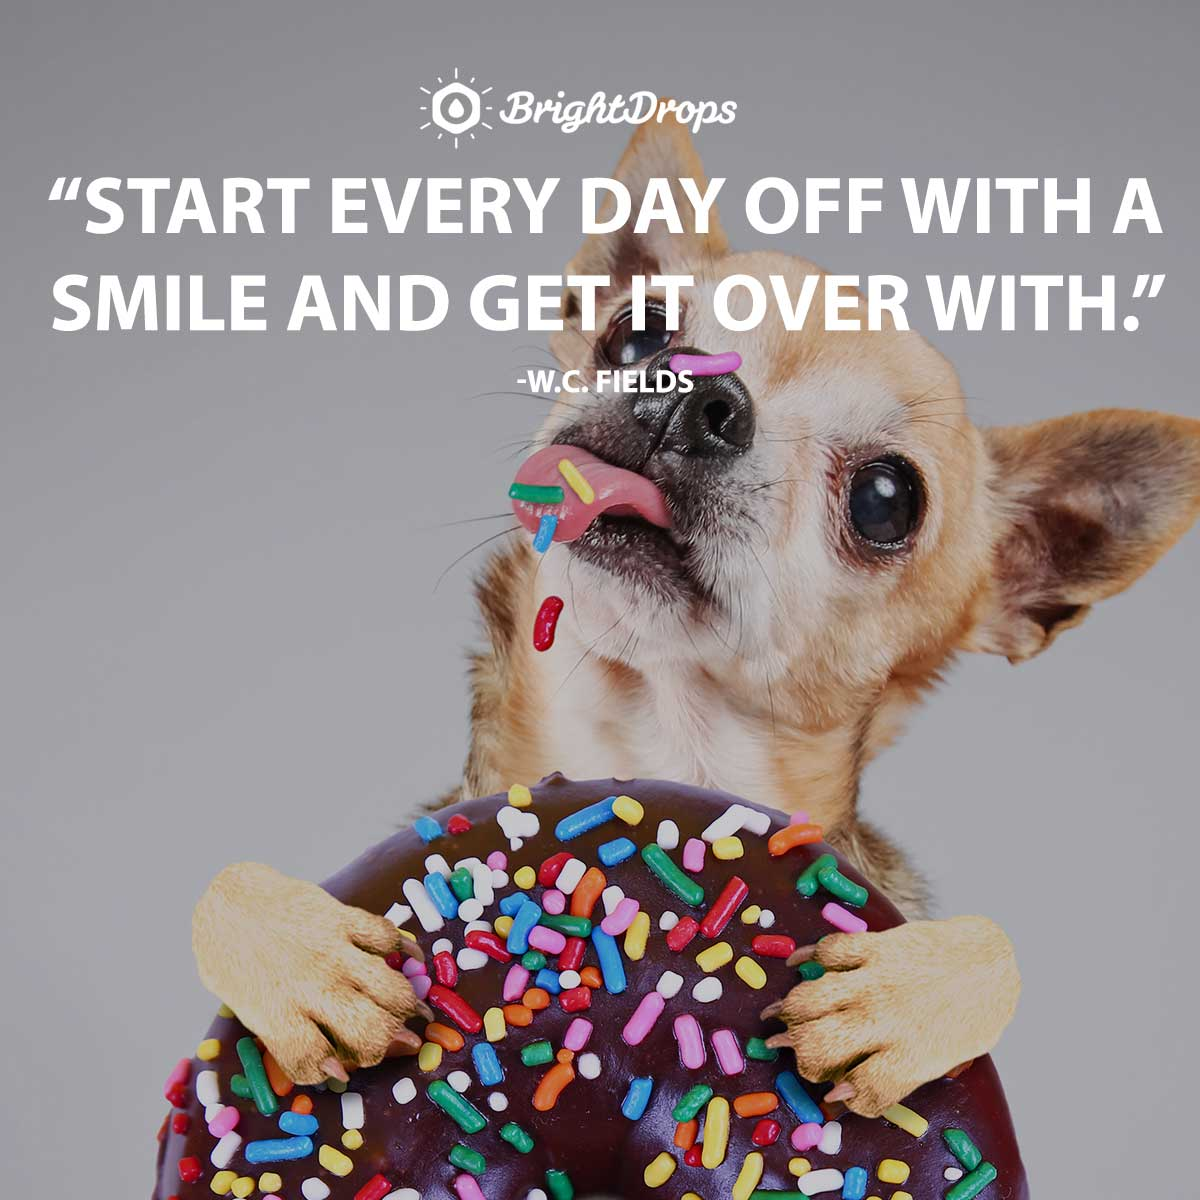 Start every day off with a smile and get it over with - W.C. Fields